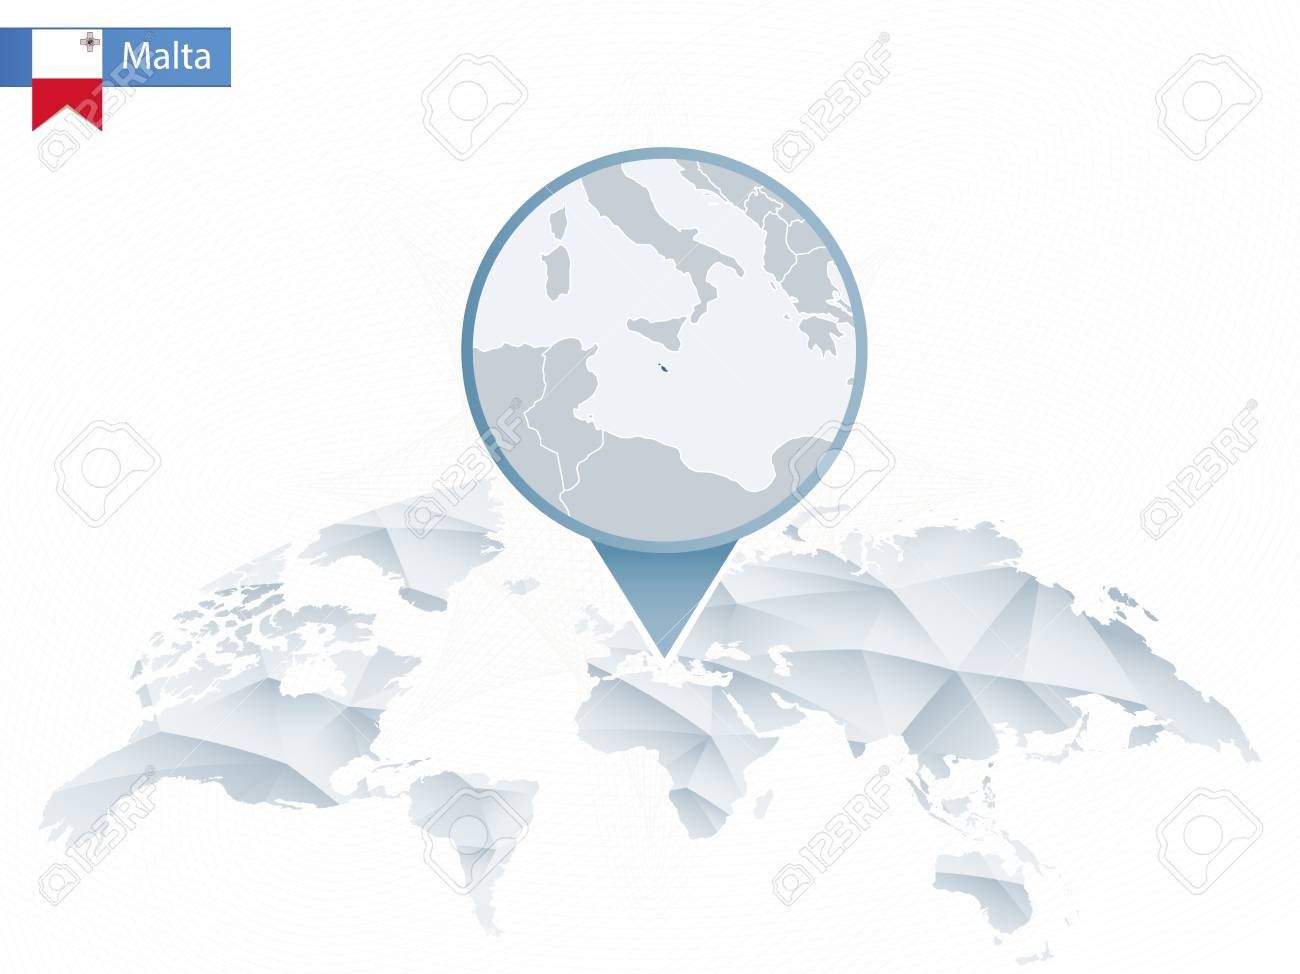 Abstract Rounded World Map With Pinned Detailed Malta Map. Vector ...